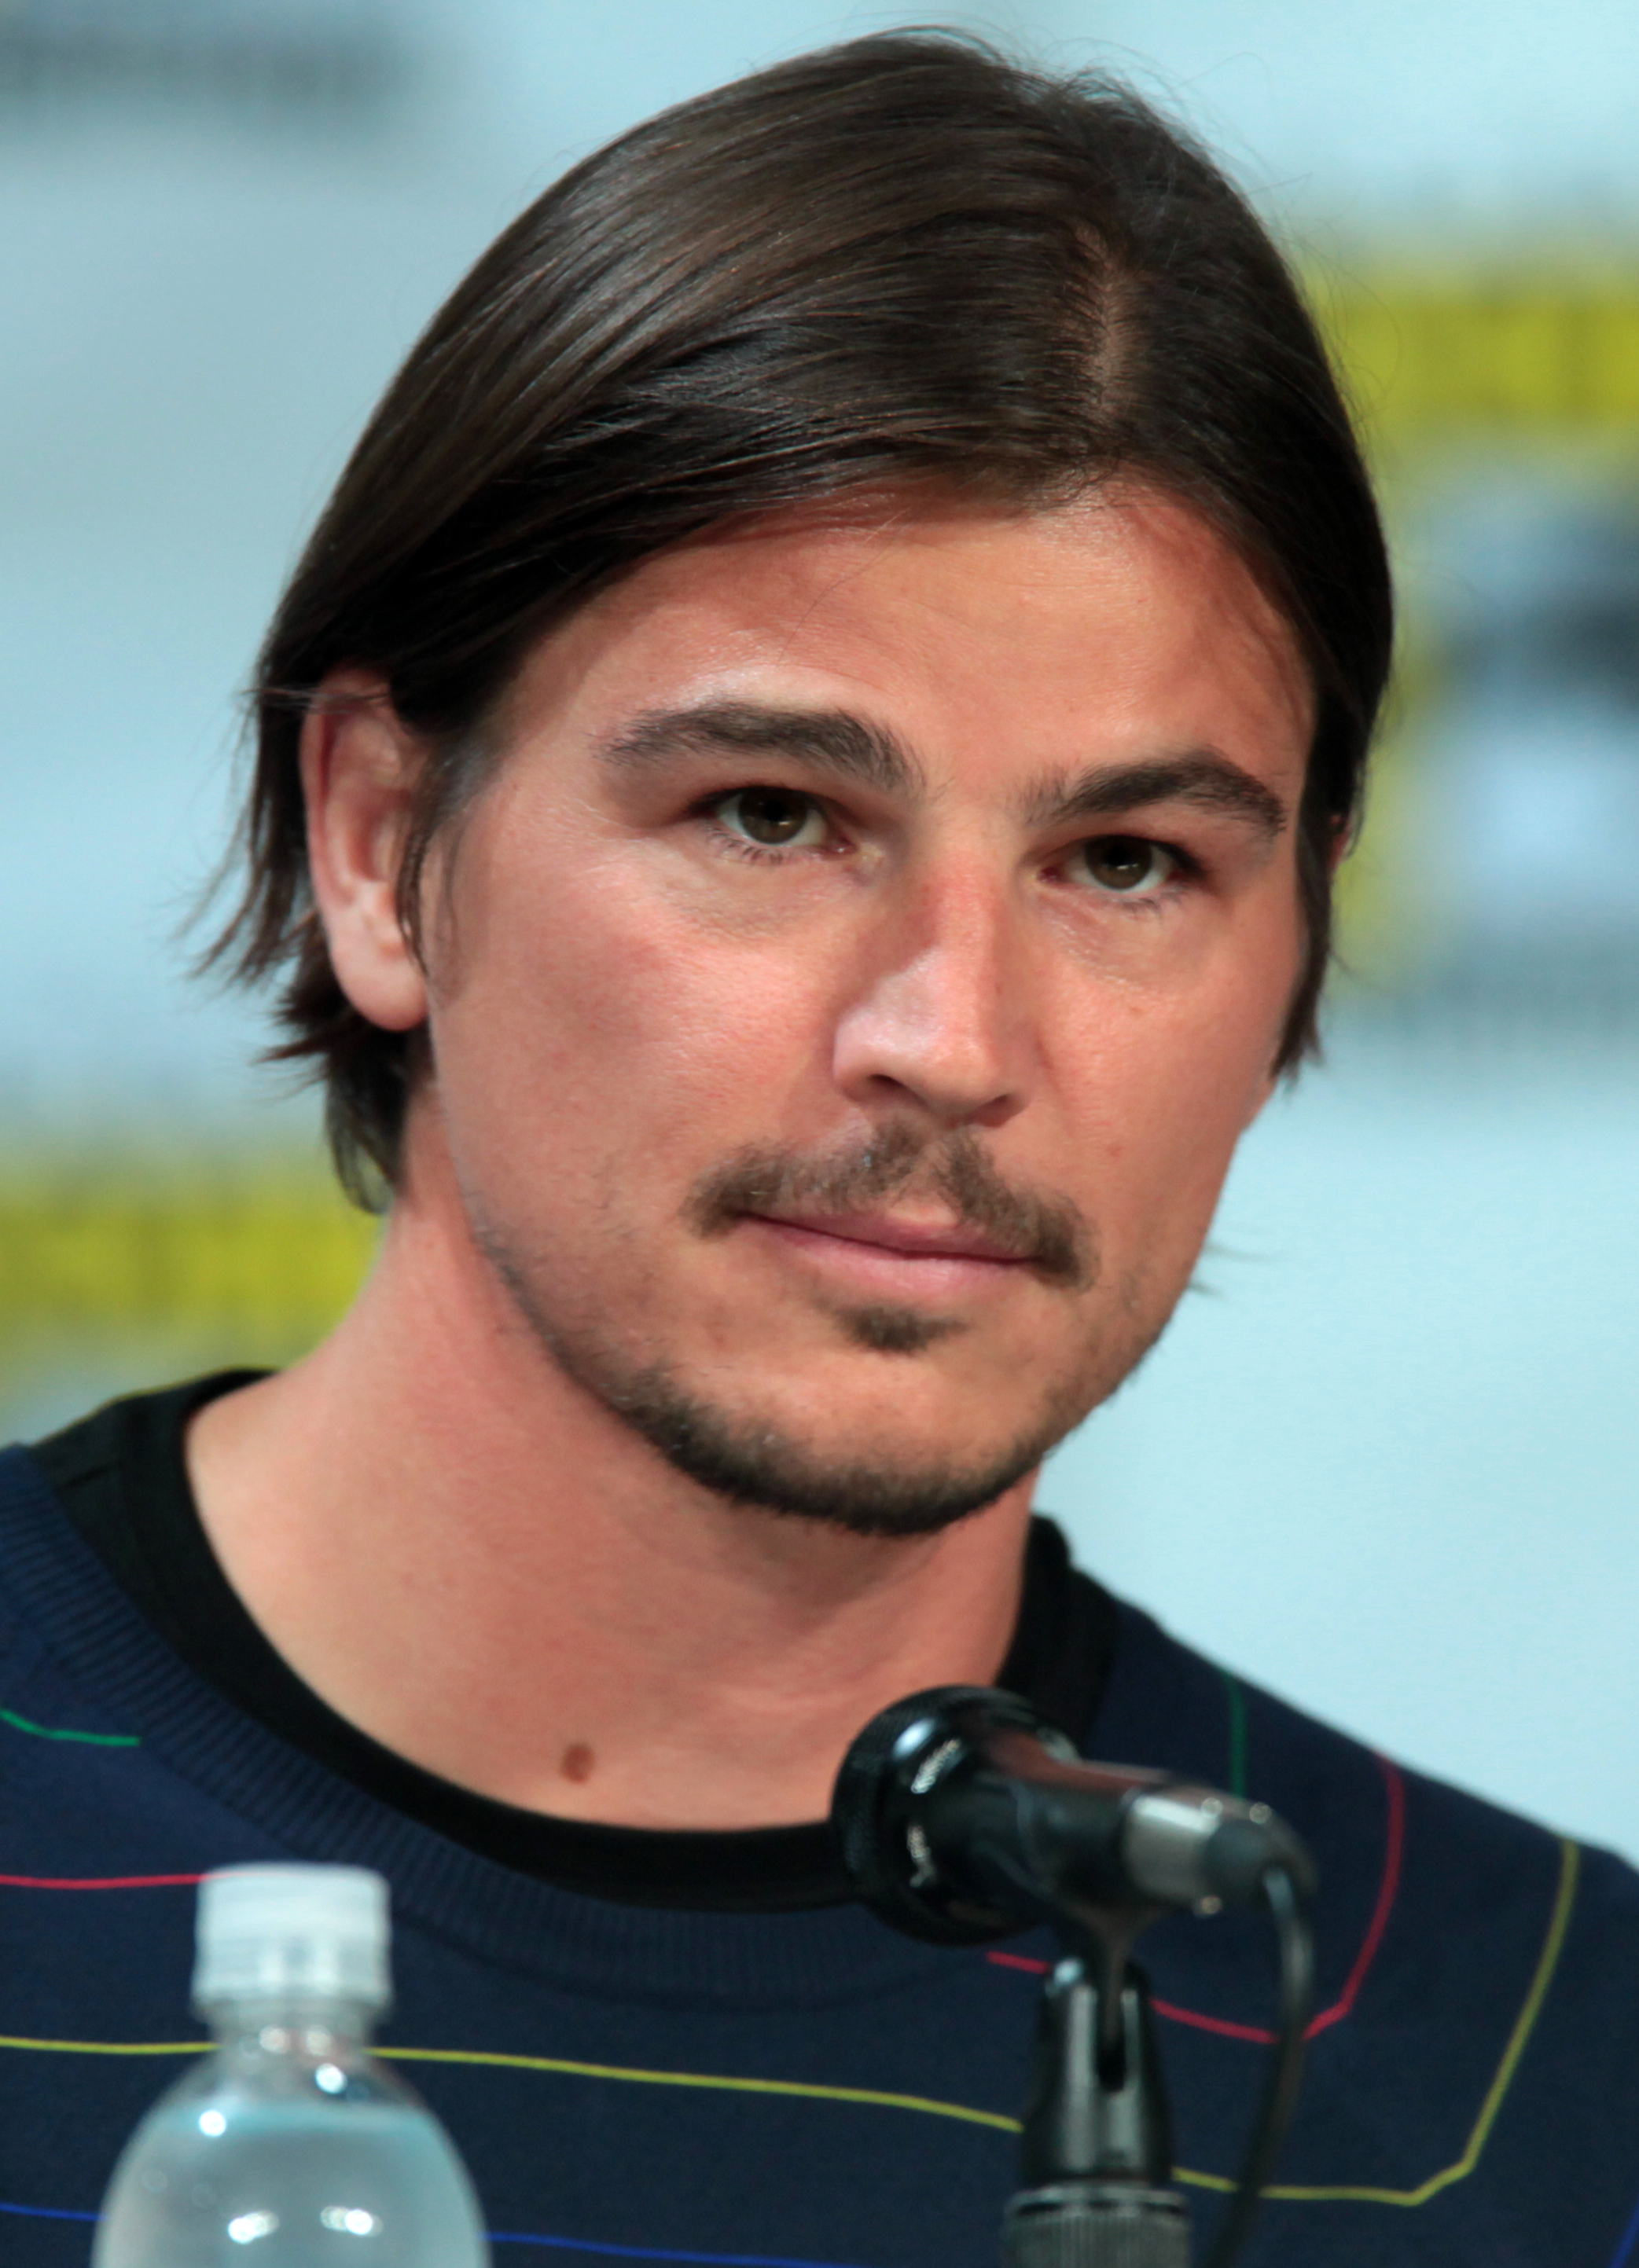 Josh Hartnett Wikipedia